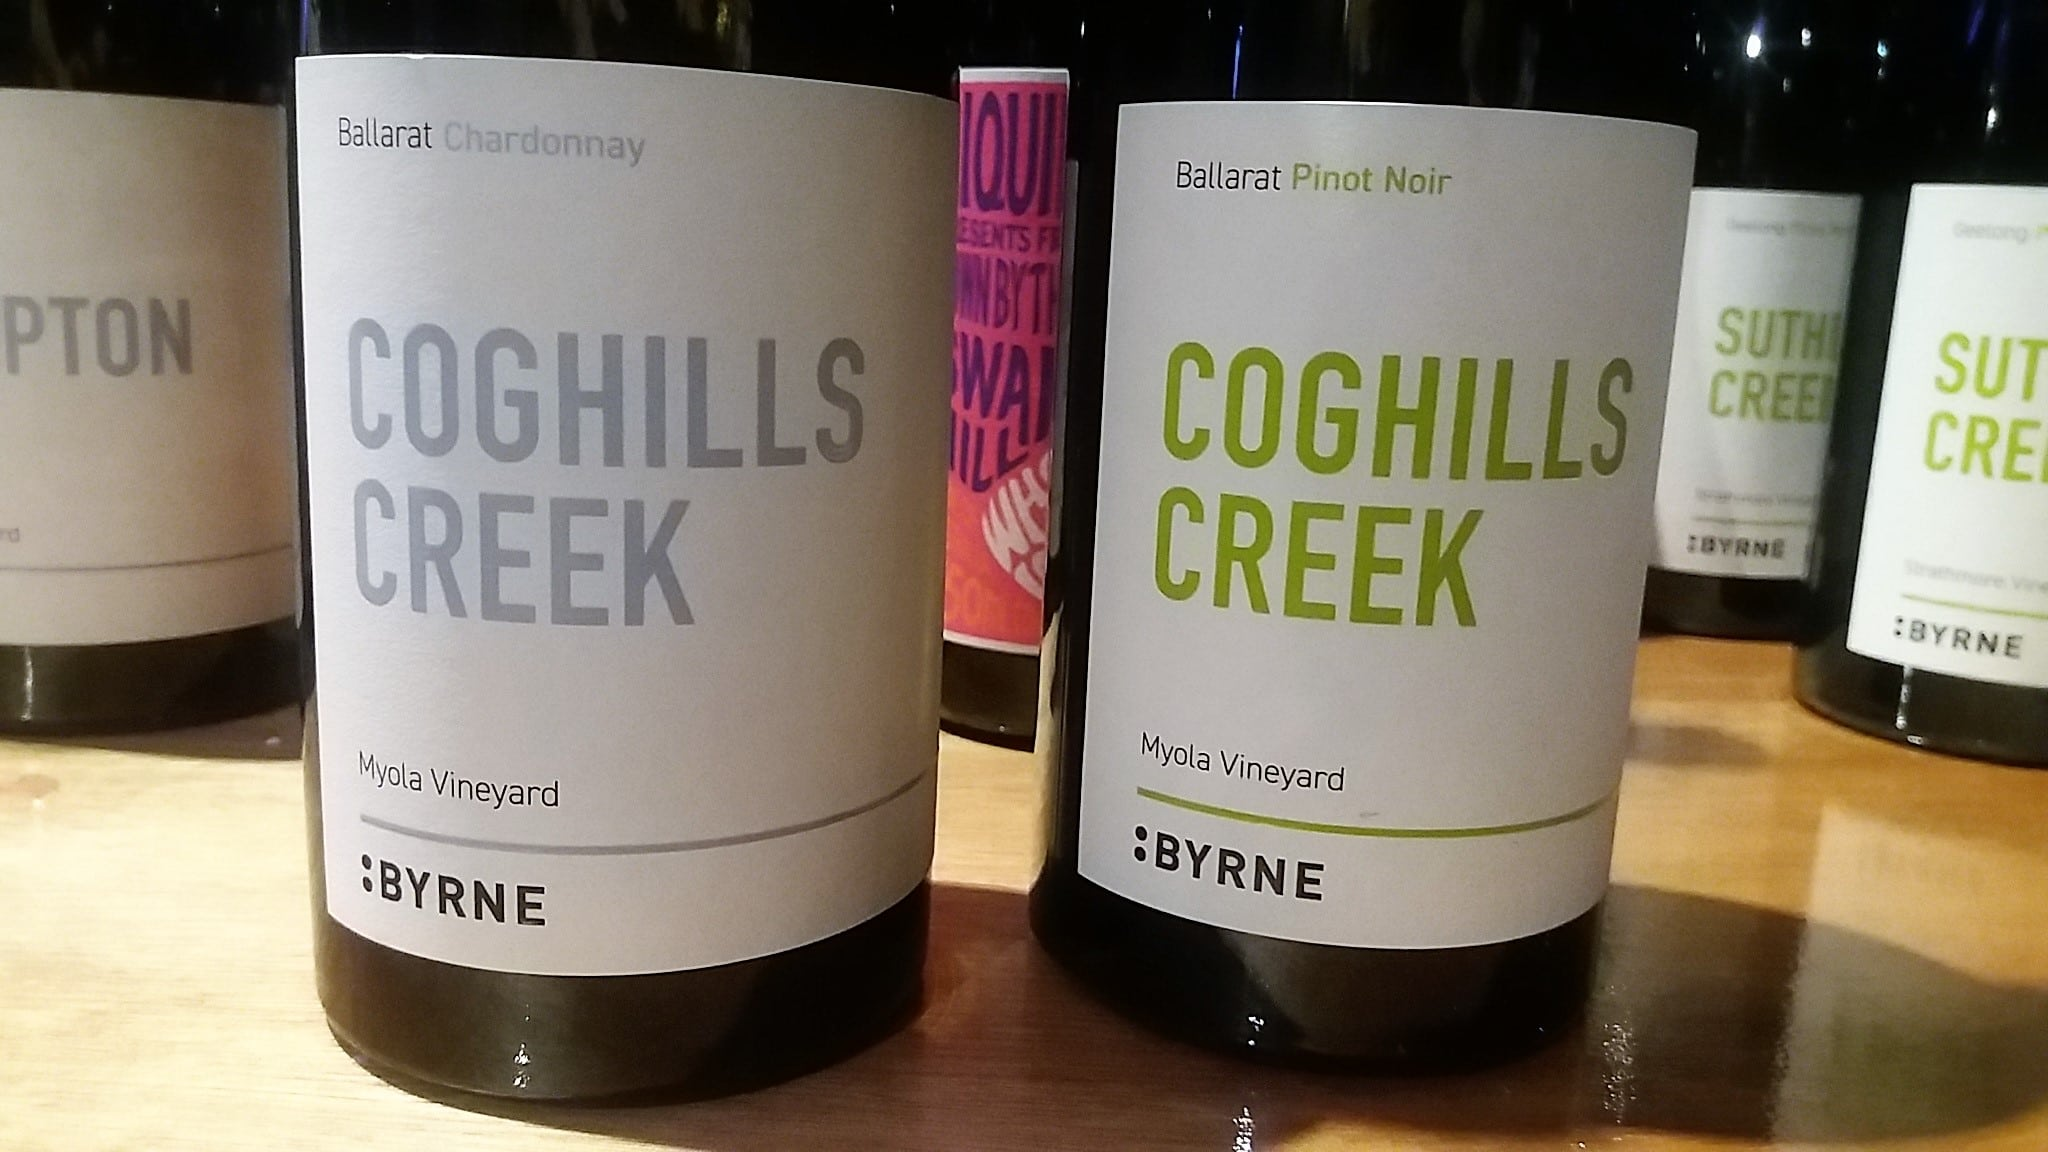 Cutting edge Australian wines